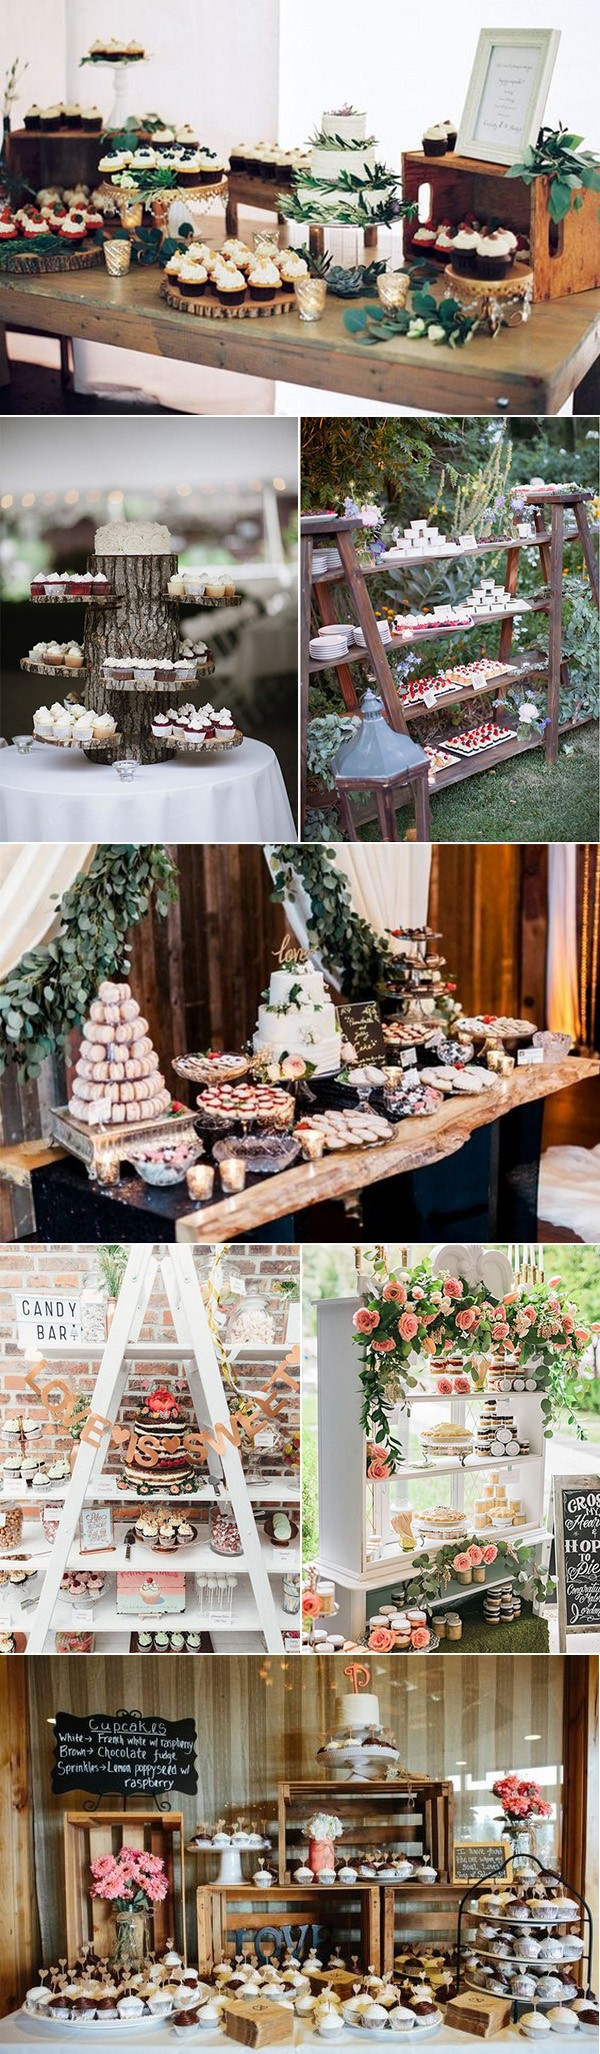 chic wedding dessert table display ideas